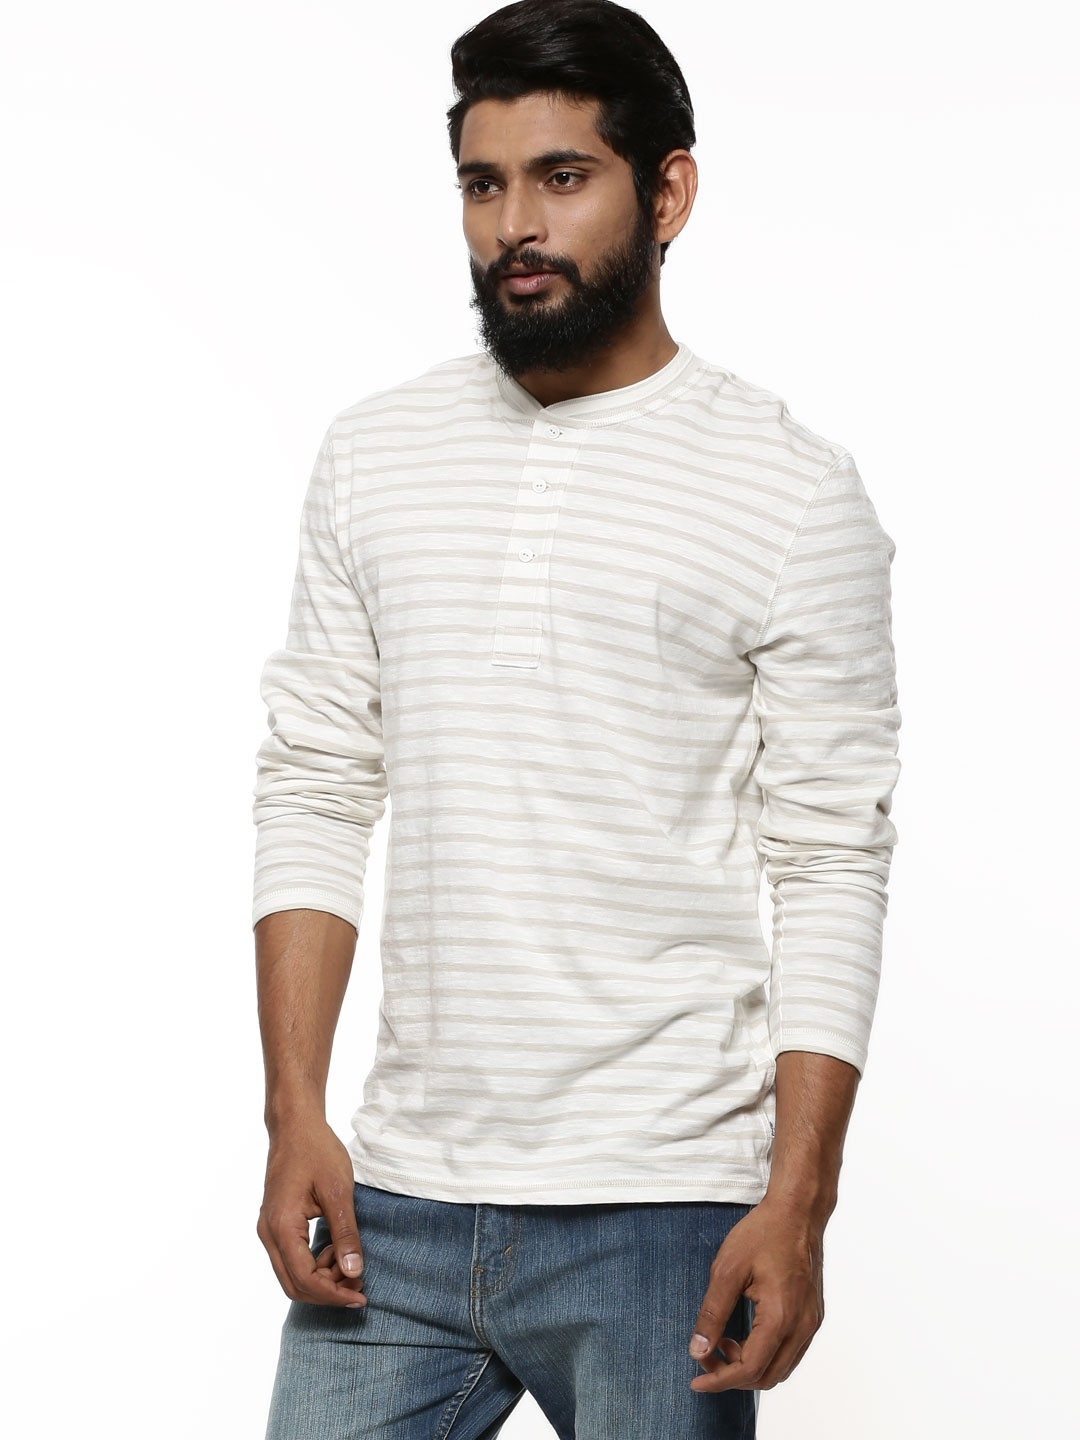 Buy henley collar striped t shirt for men men 39 s for Mens collared henley shirt